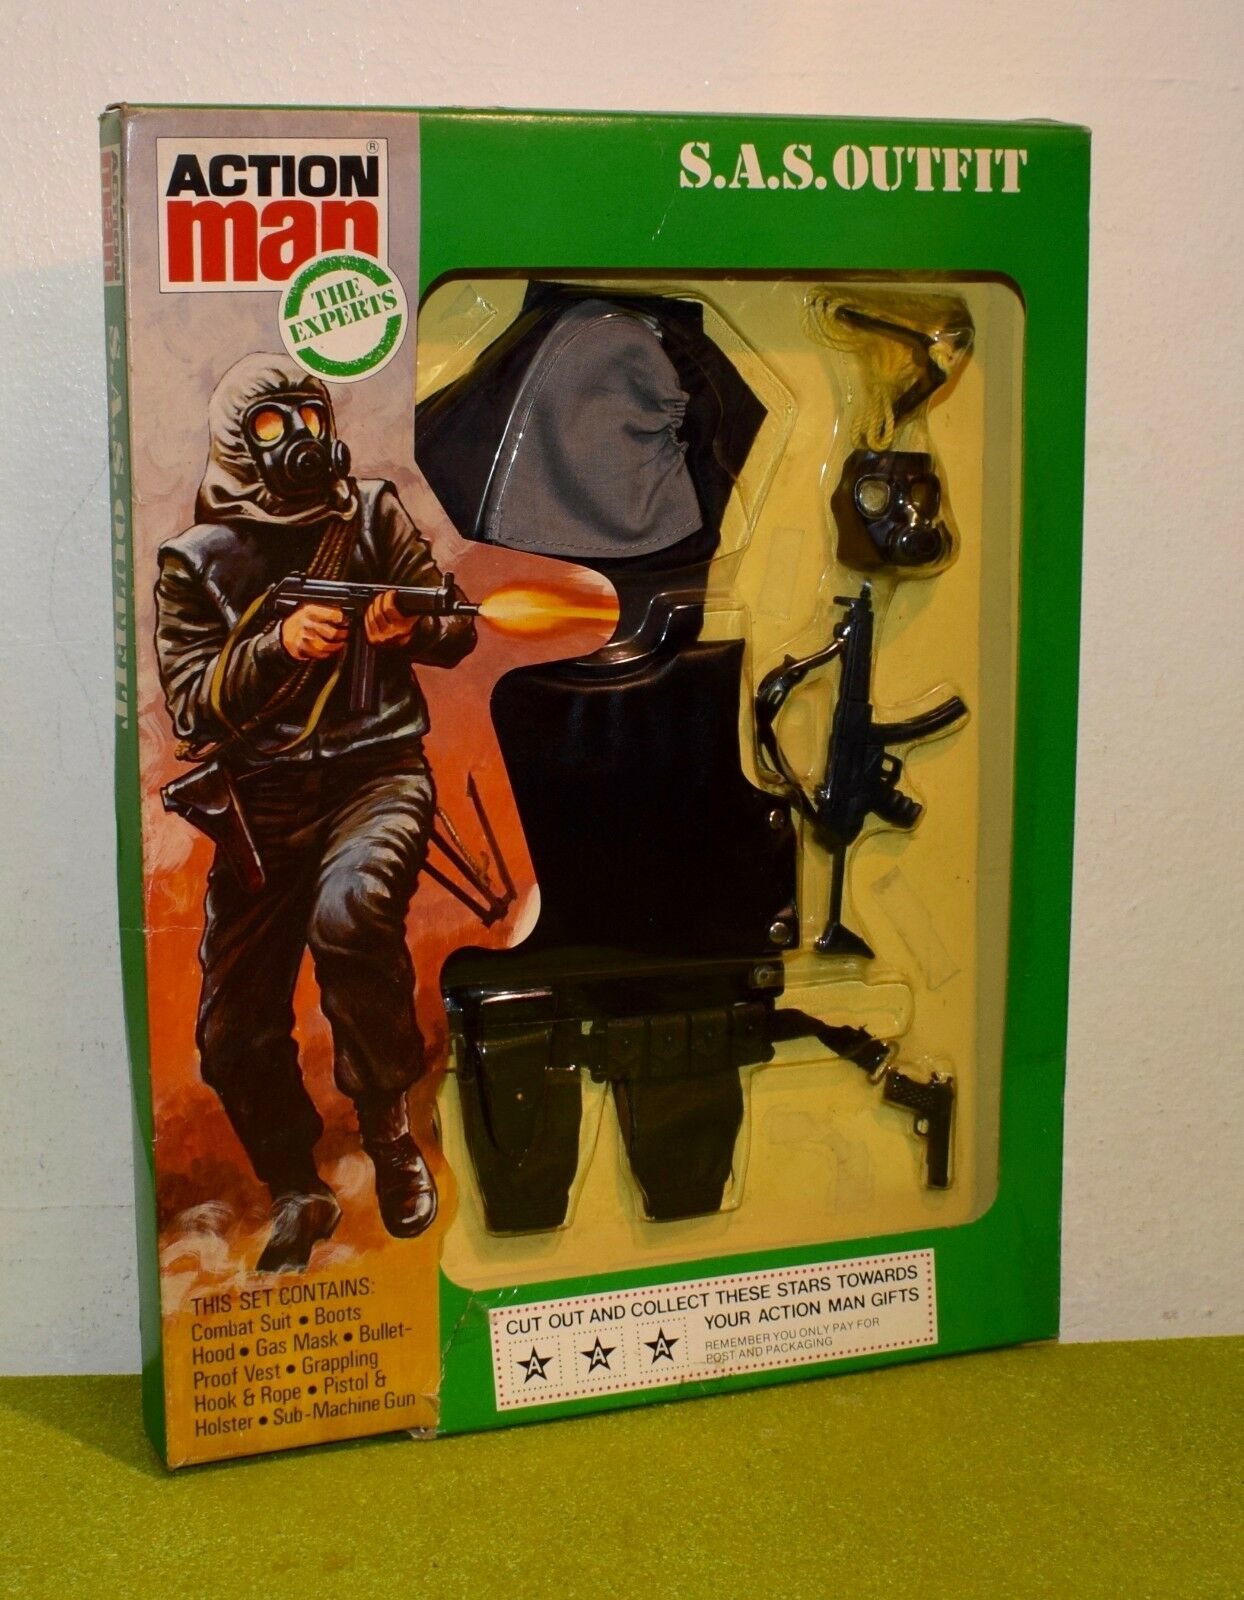 ORIGINALE VINTAGE ACTION MAN in massa gli esperti SAS Outfit